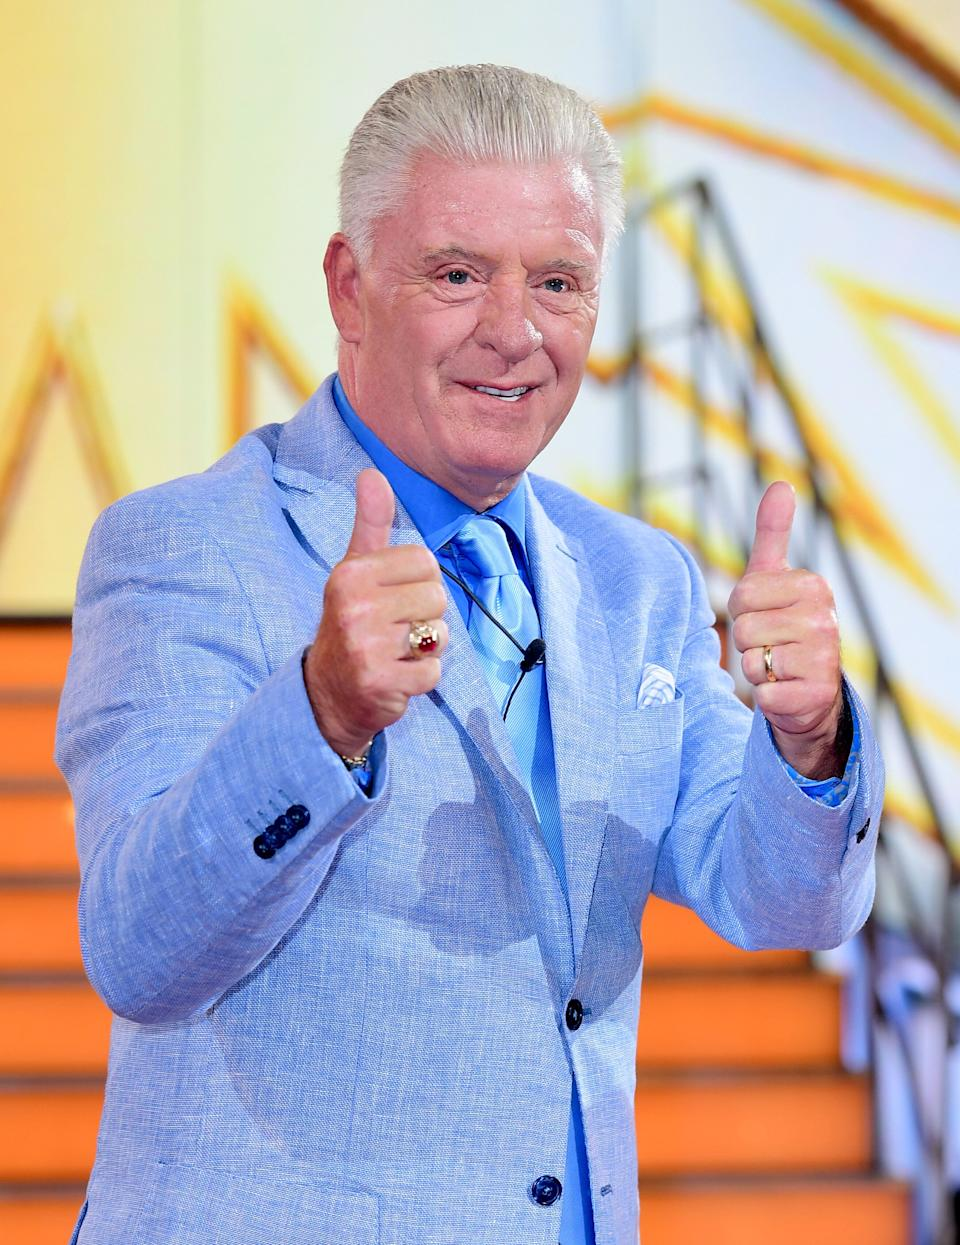 <strong>Derek Acorah (1950 - 2019)<br /></strong>The TV medium – known for shows like Most Haunted and Michael Jackson: The Live Seance – died at the age of 69, having contracted sepsis after being hospitalised for pneumonia.